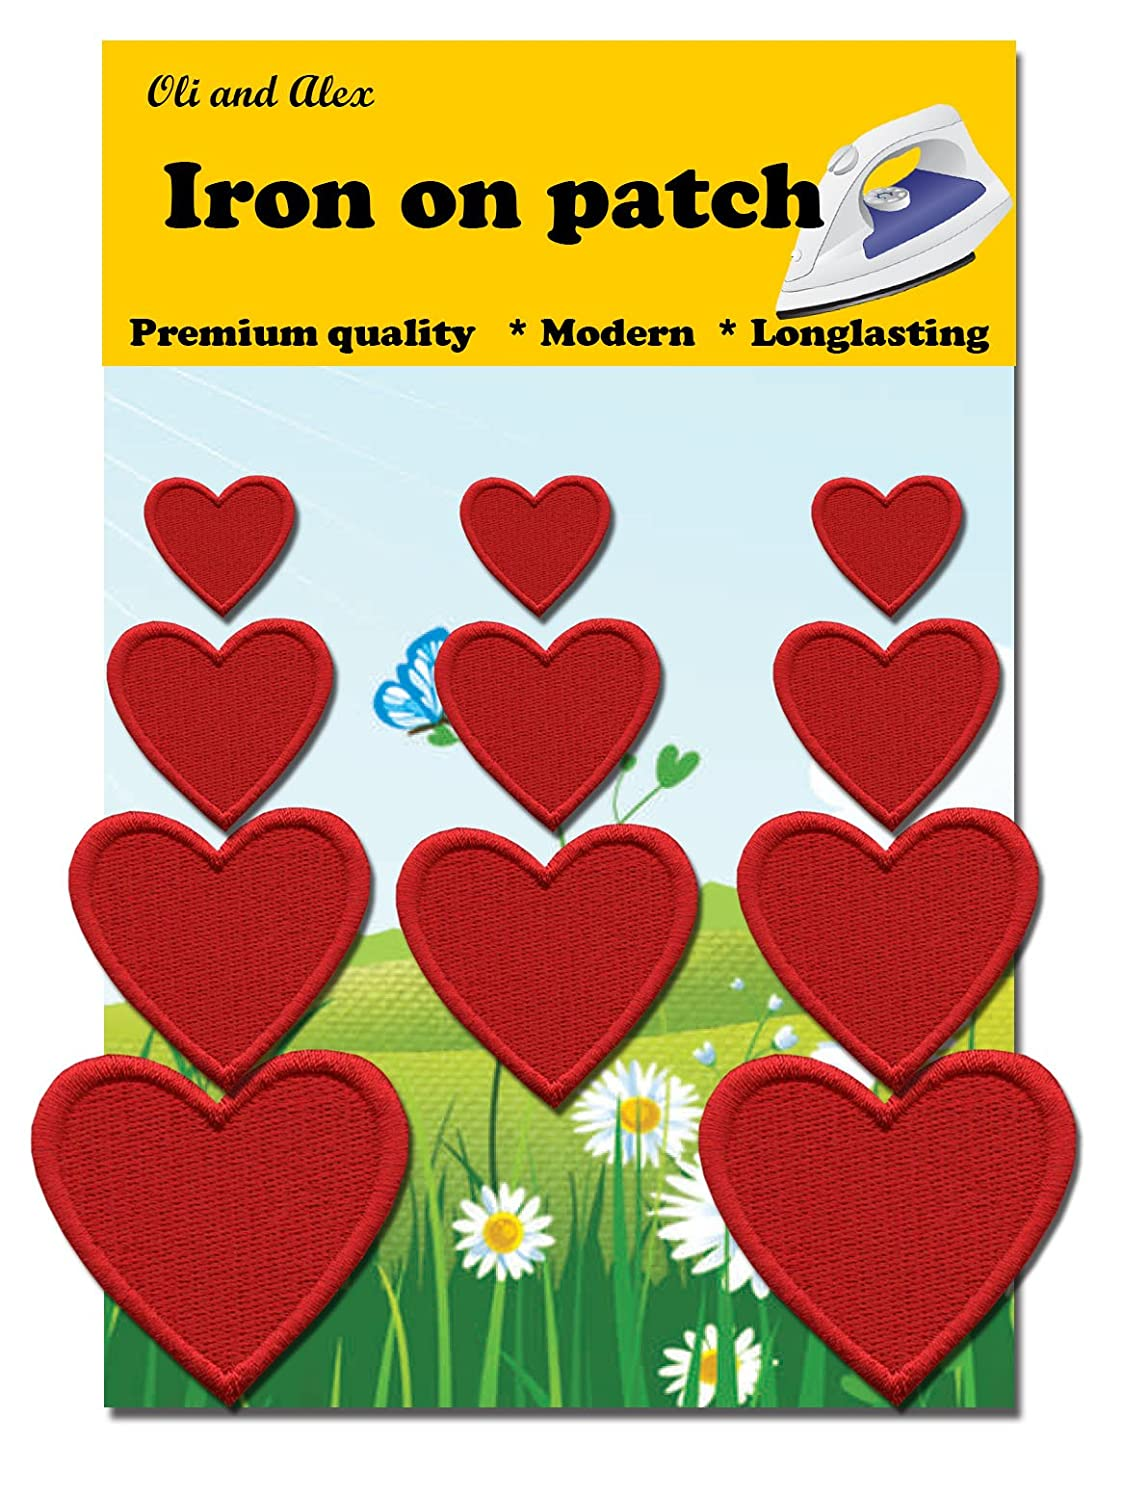 Iron On Patches - Red Heart Patch 11 pcs Iron On Patch Embroidered Applique A-142